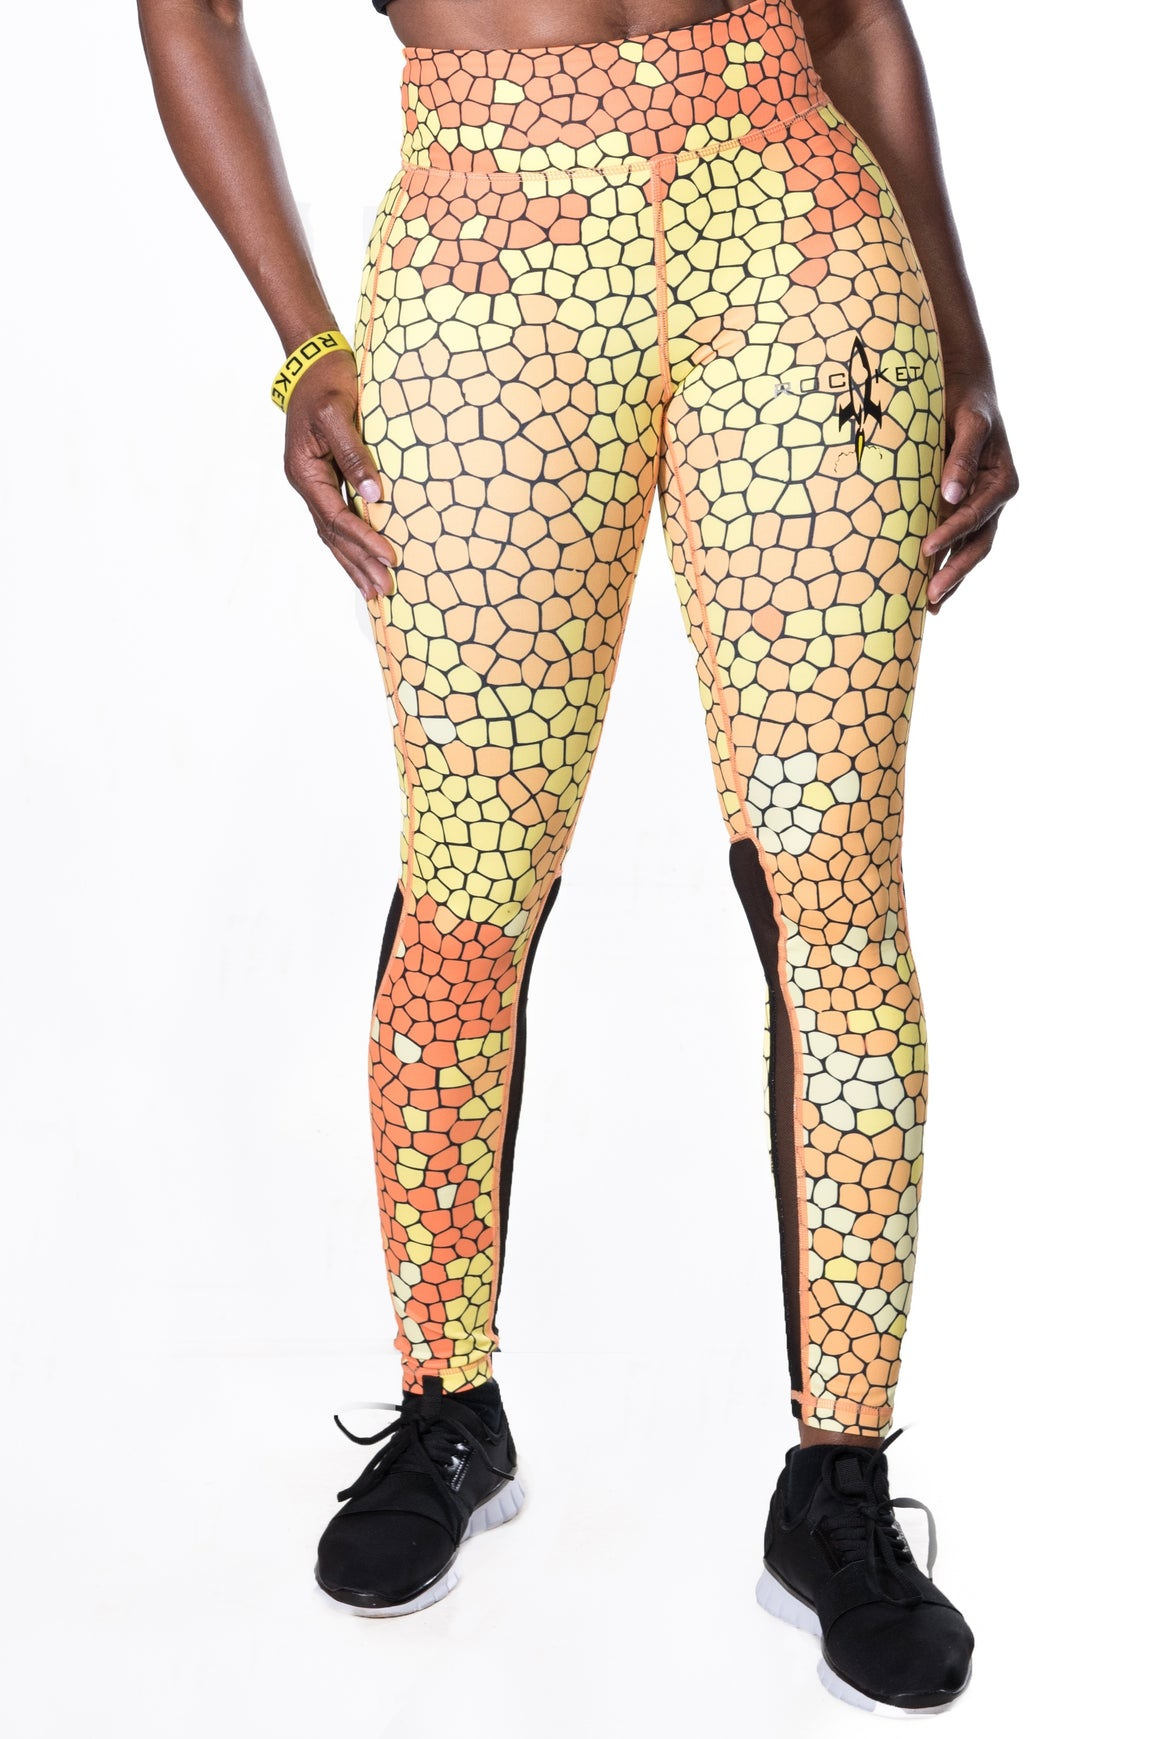 Women's Pro Art Mesh Leggings - Yellow (Plus Sizes Available)